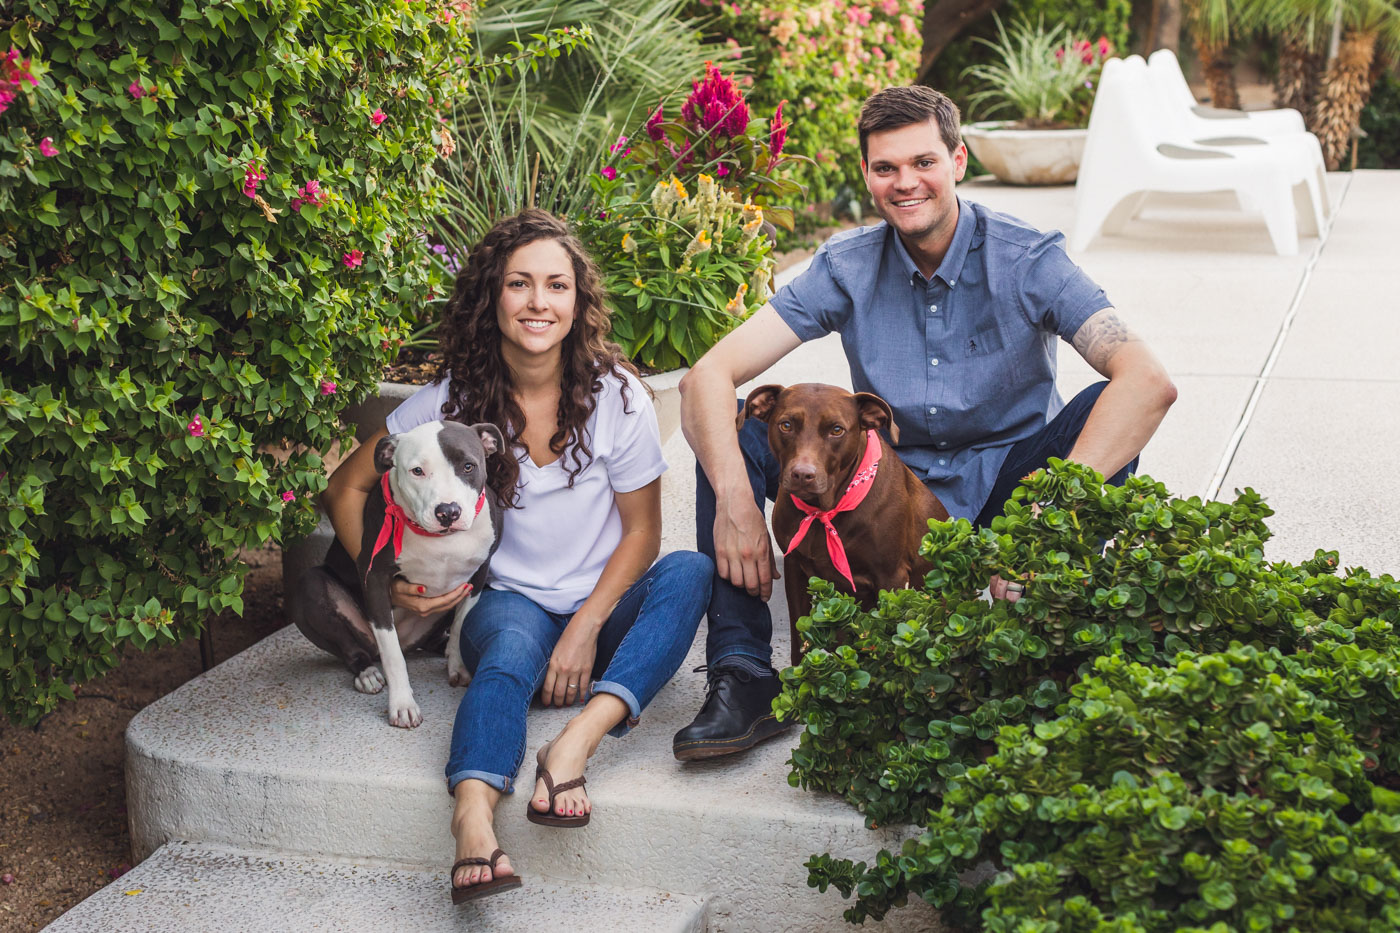 aaron-kes-photography-engagement-session-with-dogs